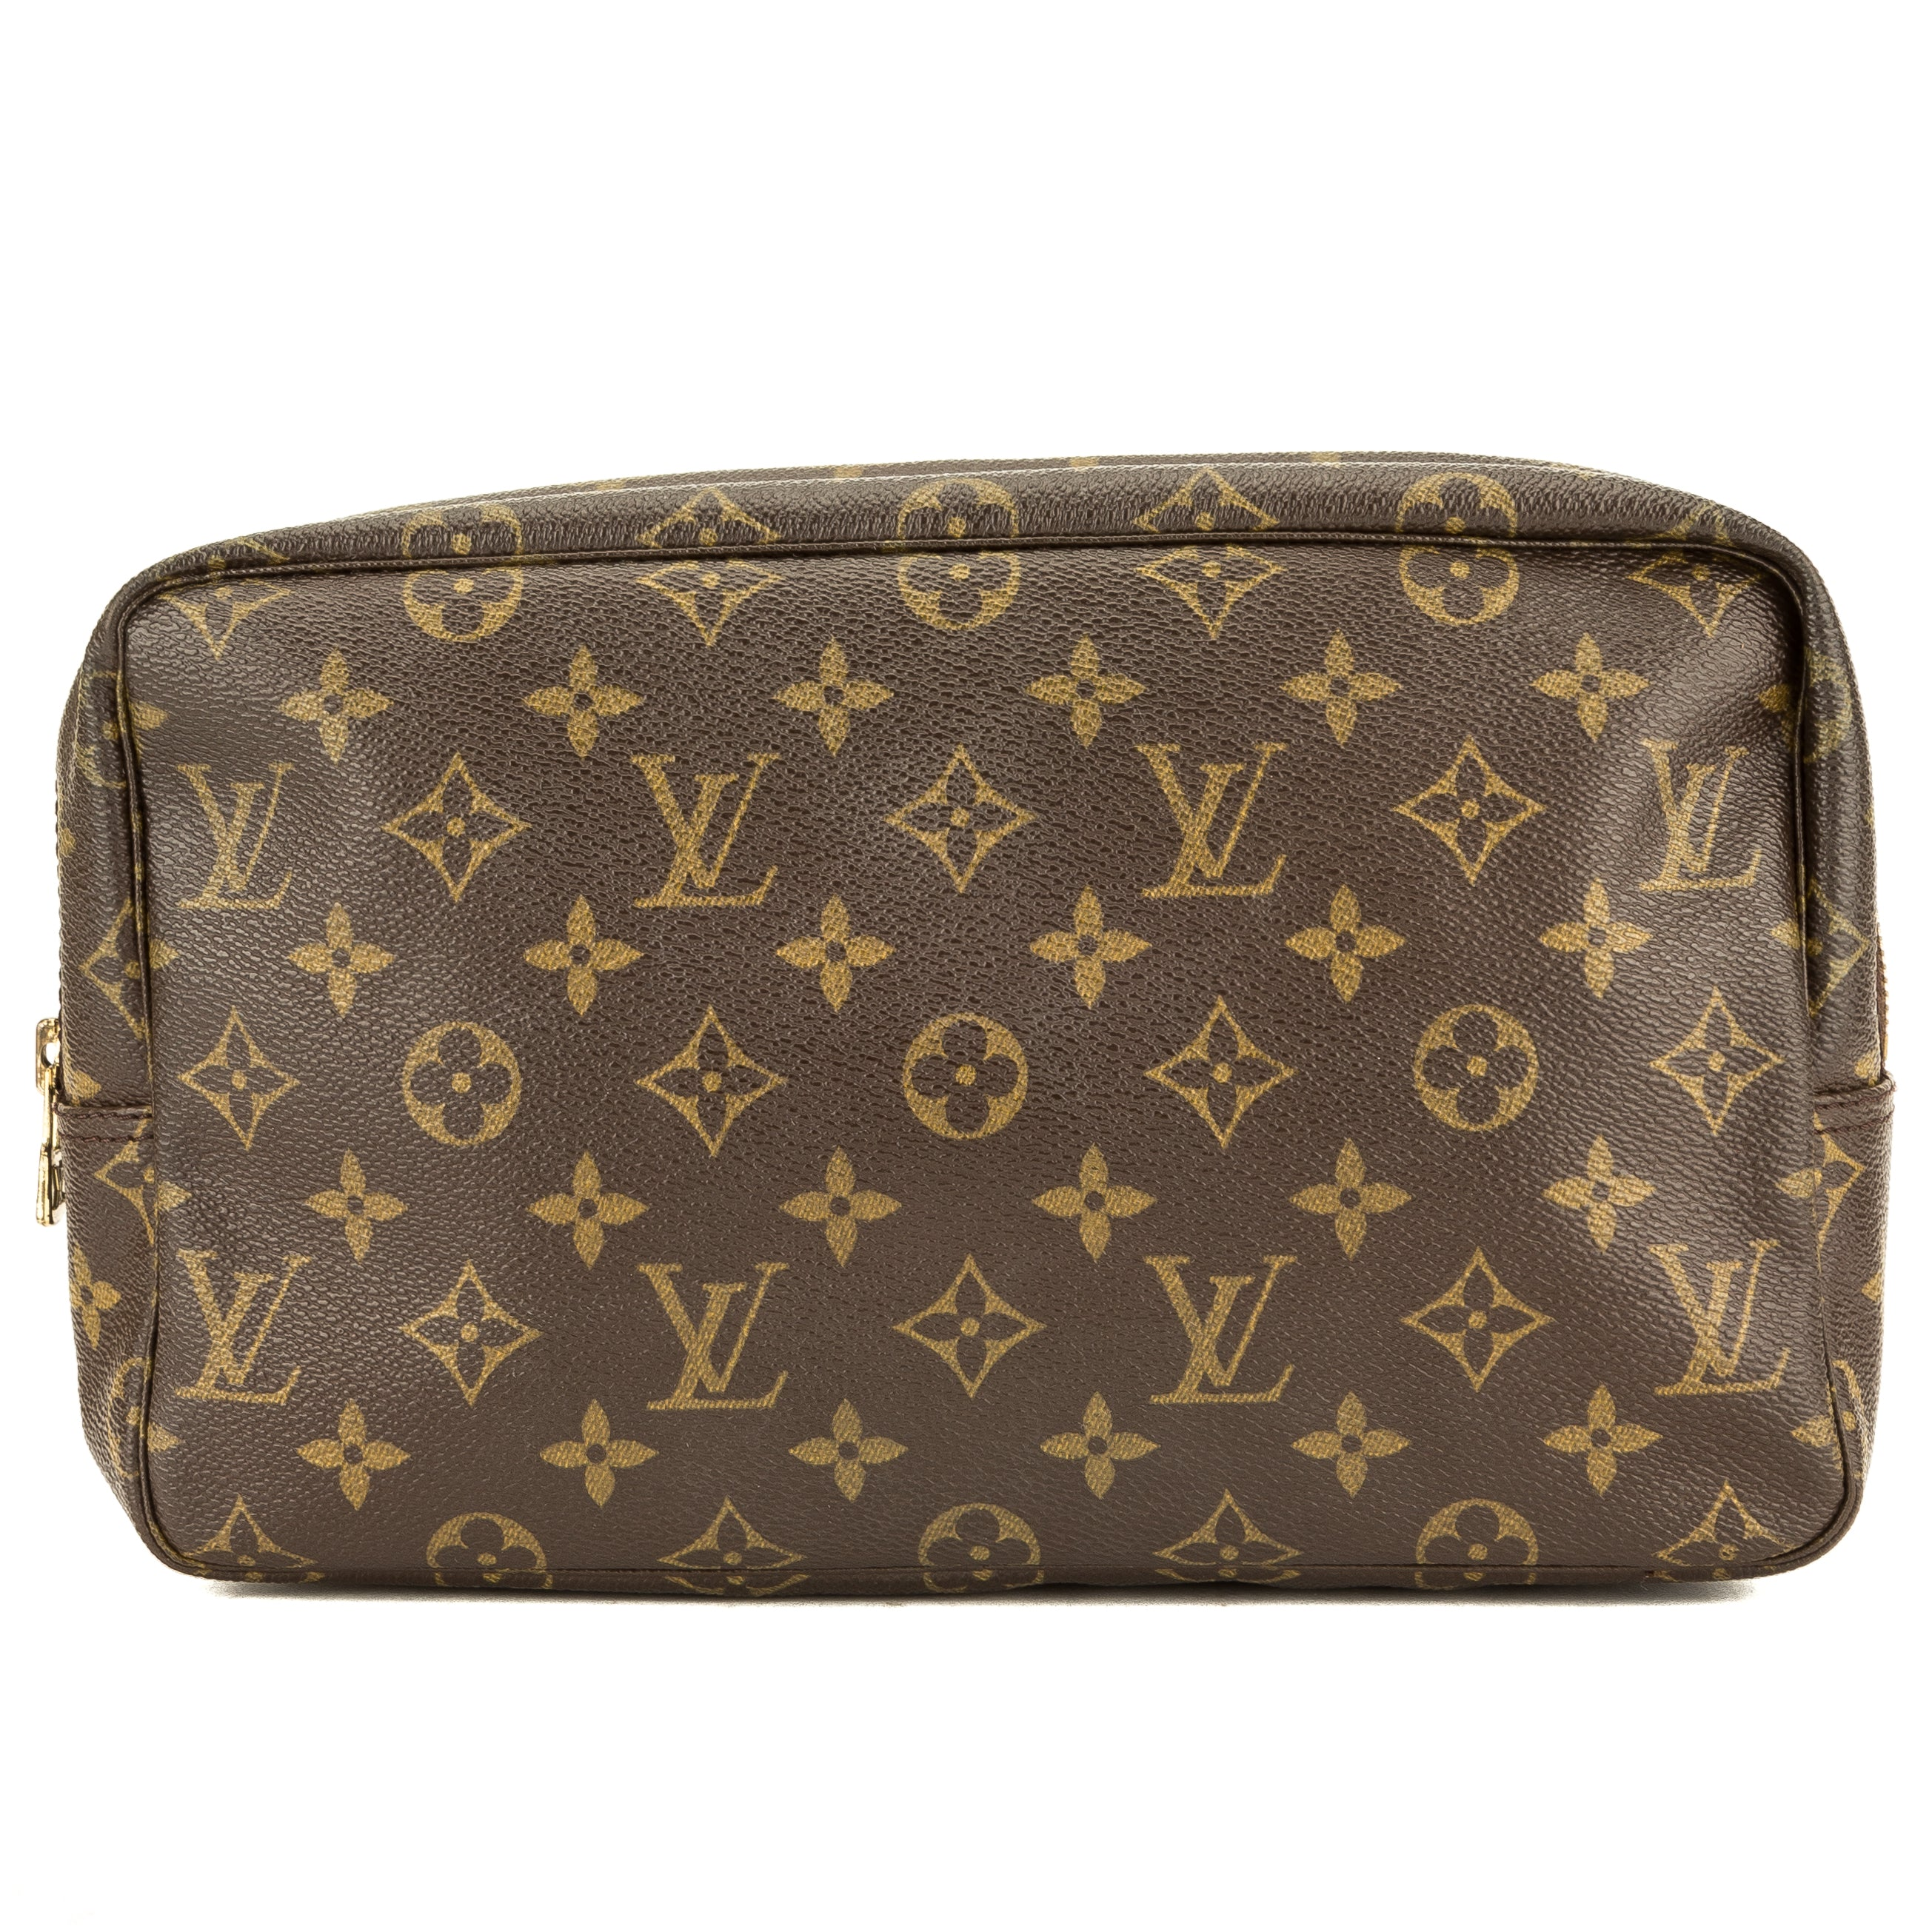 Louis Vuitton Monogram Trousse Toilette 28 Cosmetic Pouch (3919032 ... 0eb5060fb565a